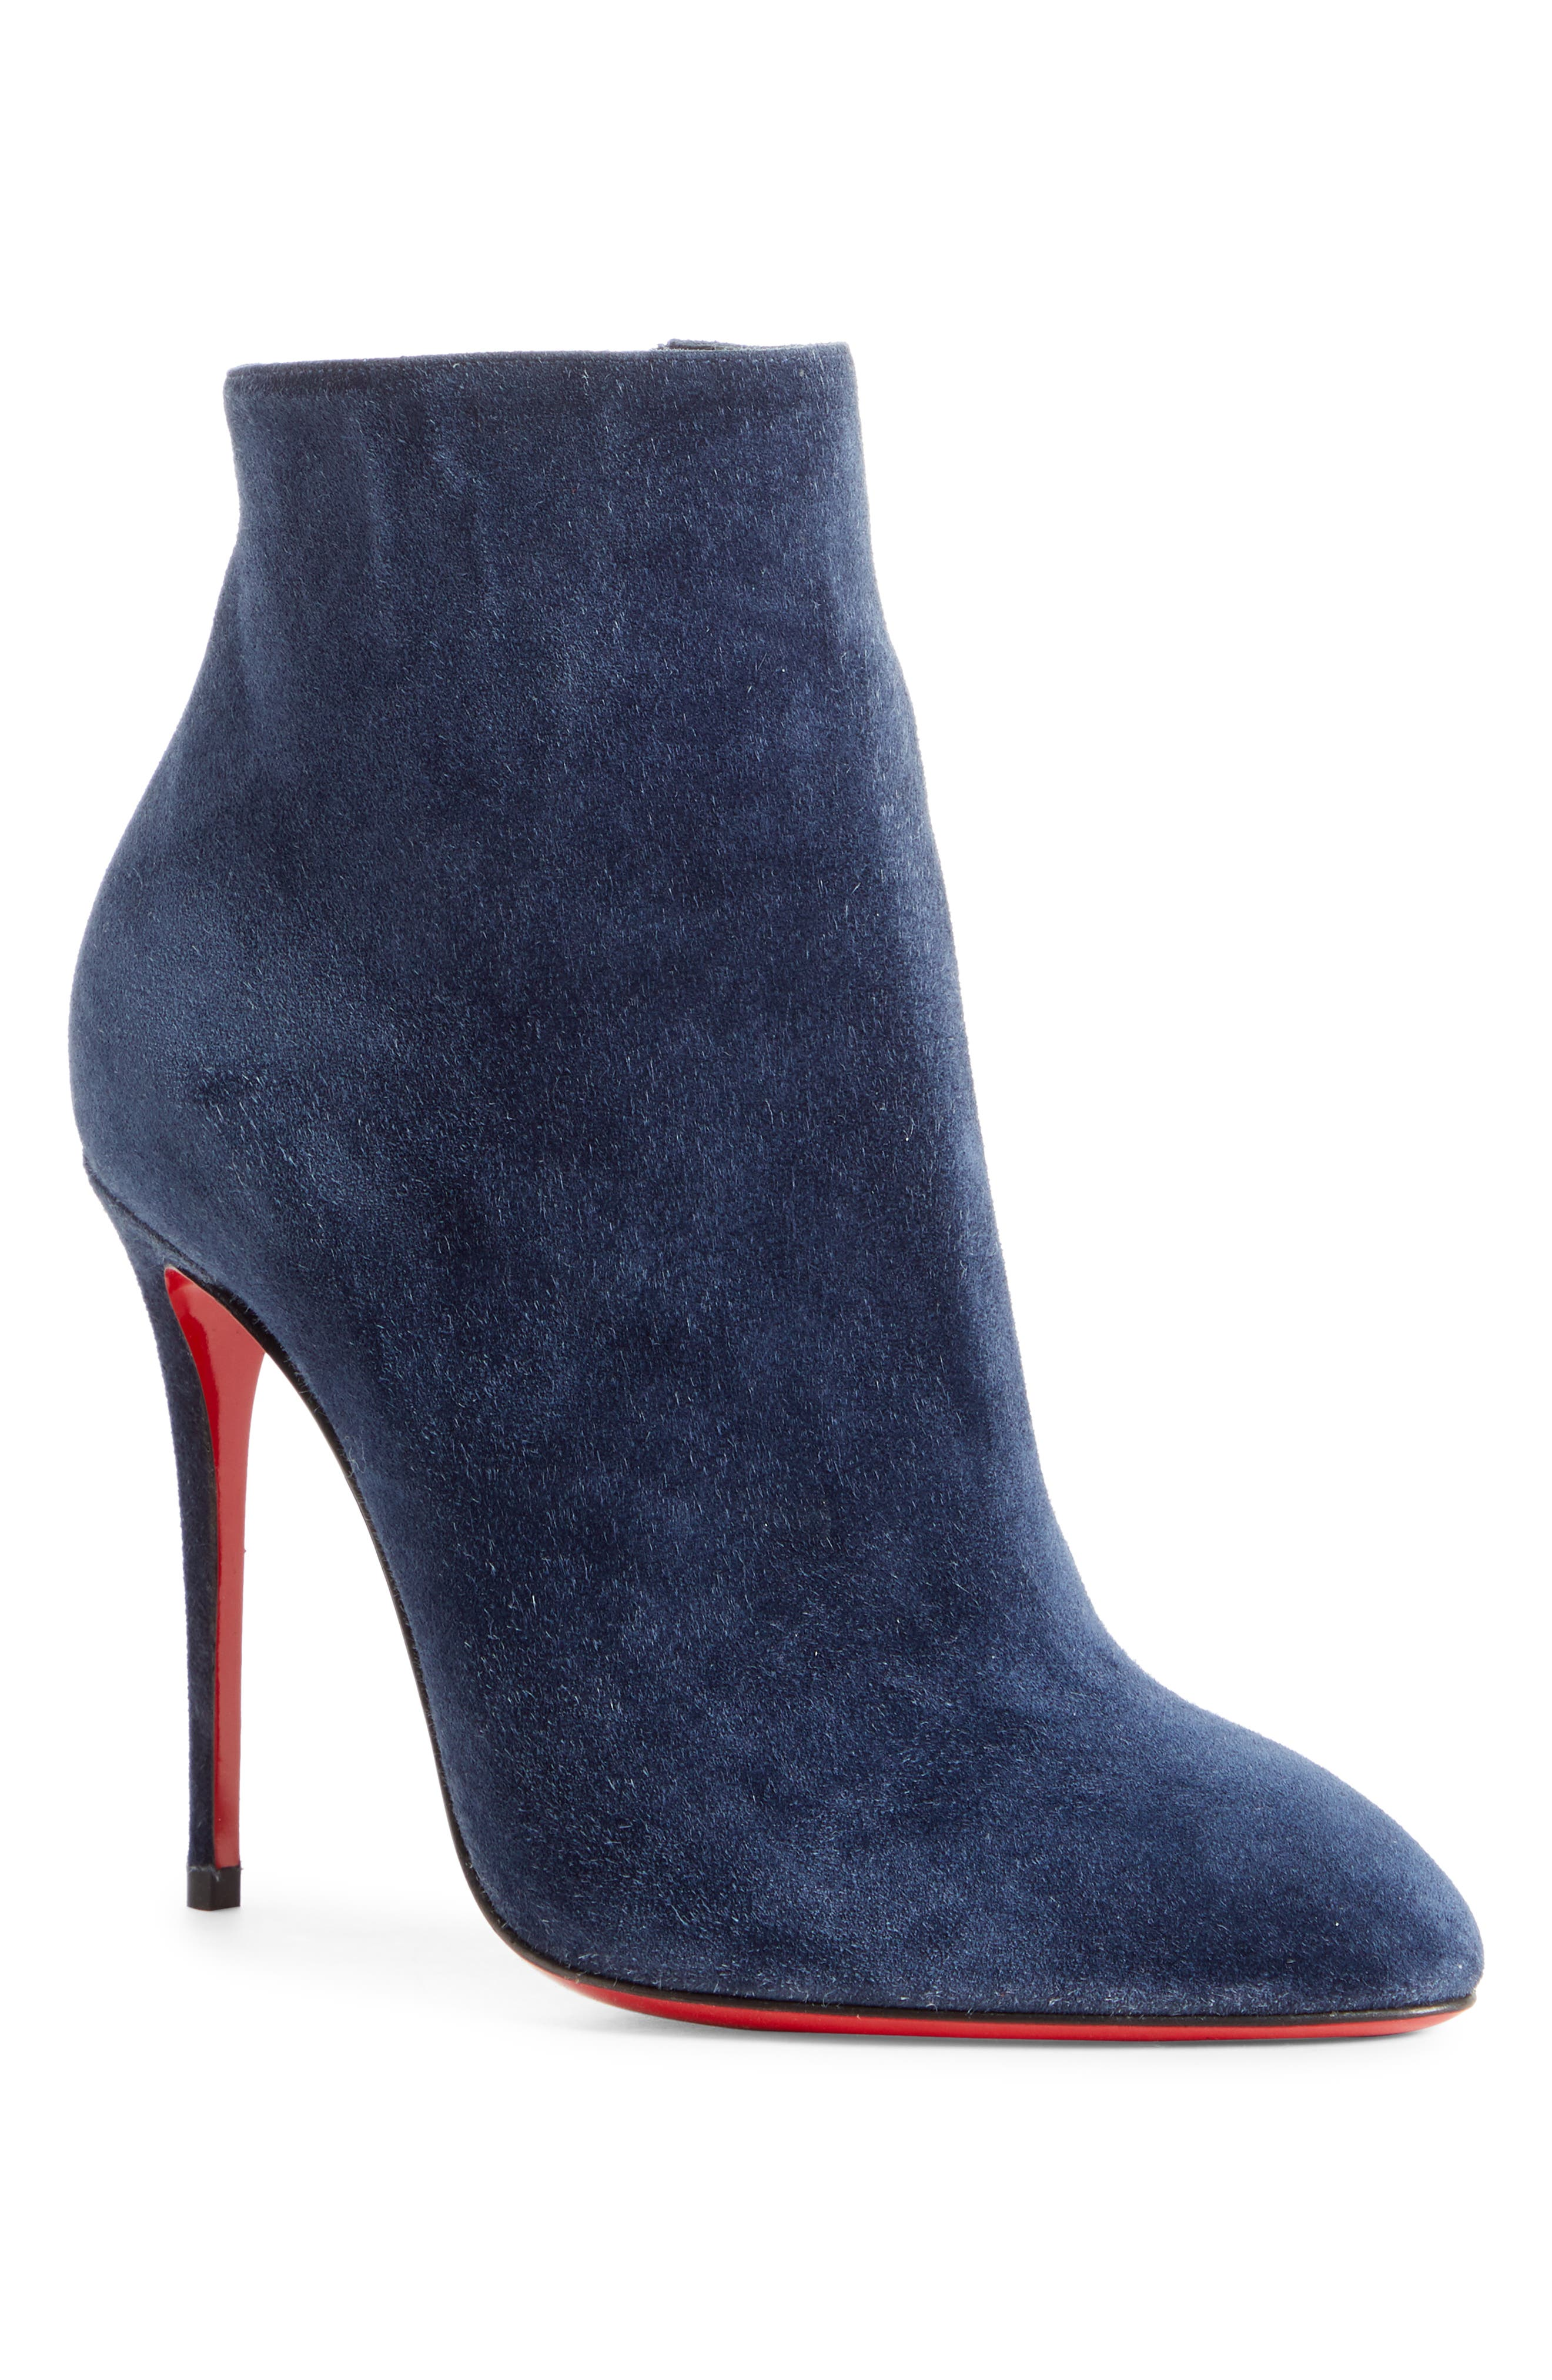 Christian Louboutin Eloise Pointy Toe Bootie, Blue